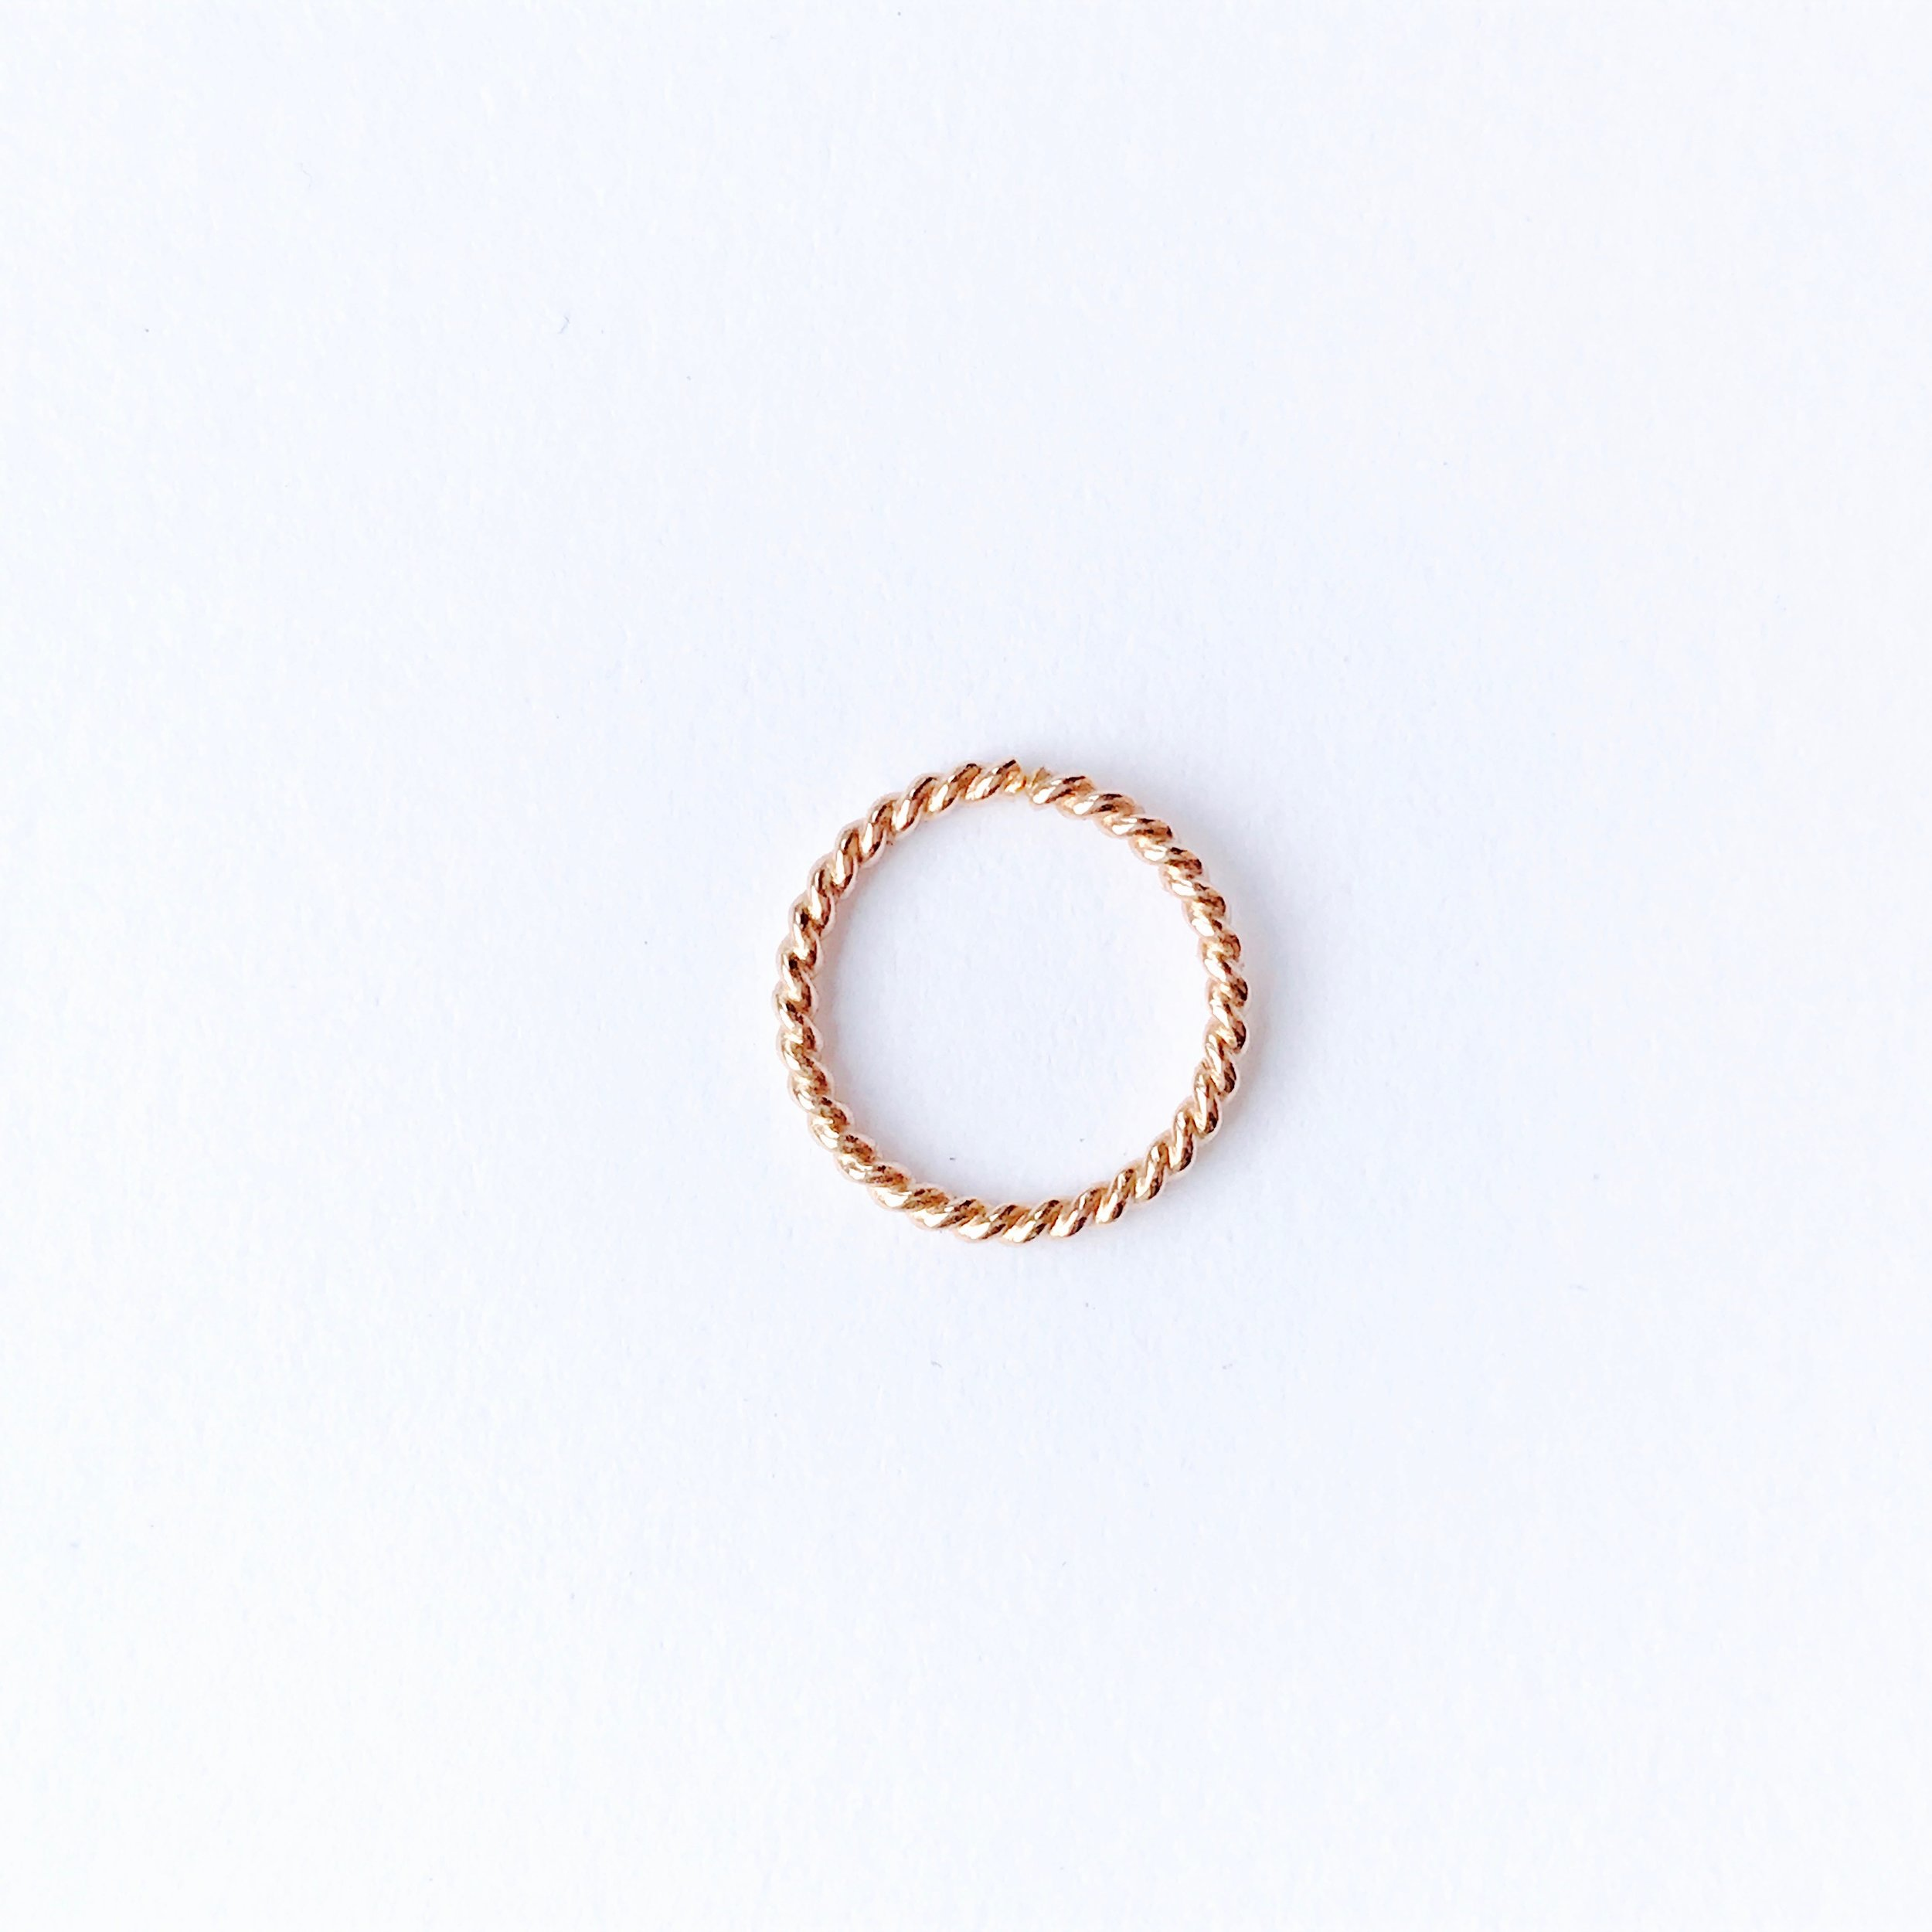 14k rose gold twist pattern hoop - 10mm diameter